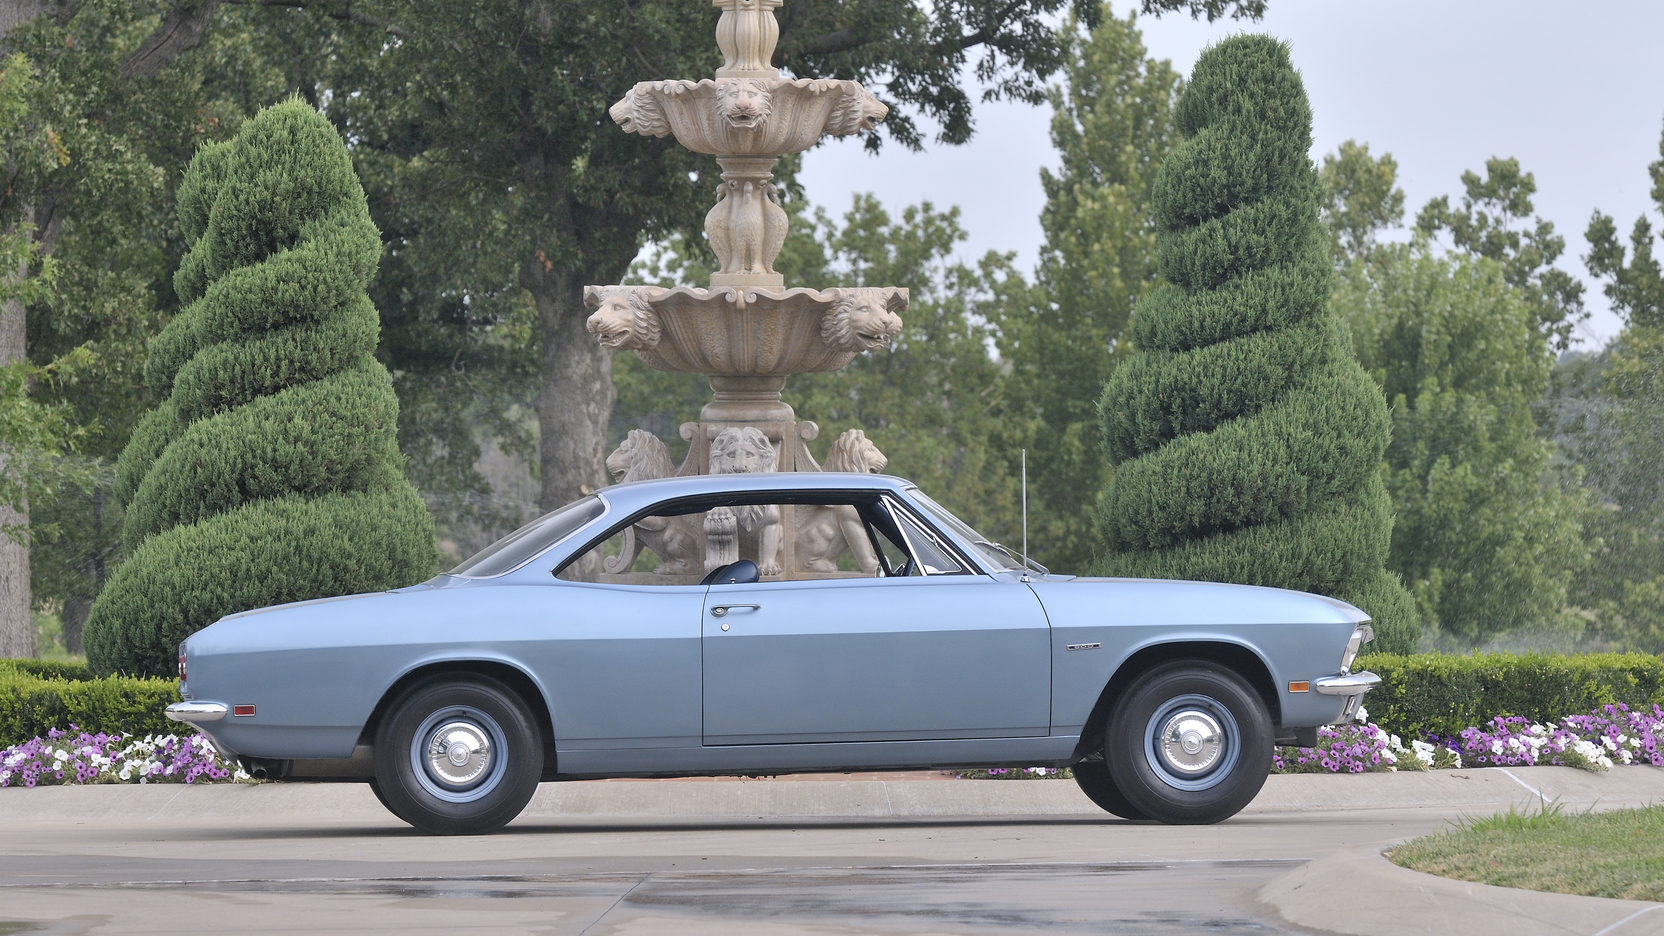 1969 Chevrolet Corvair 500 coupe profile